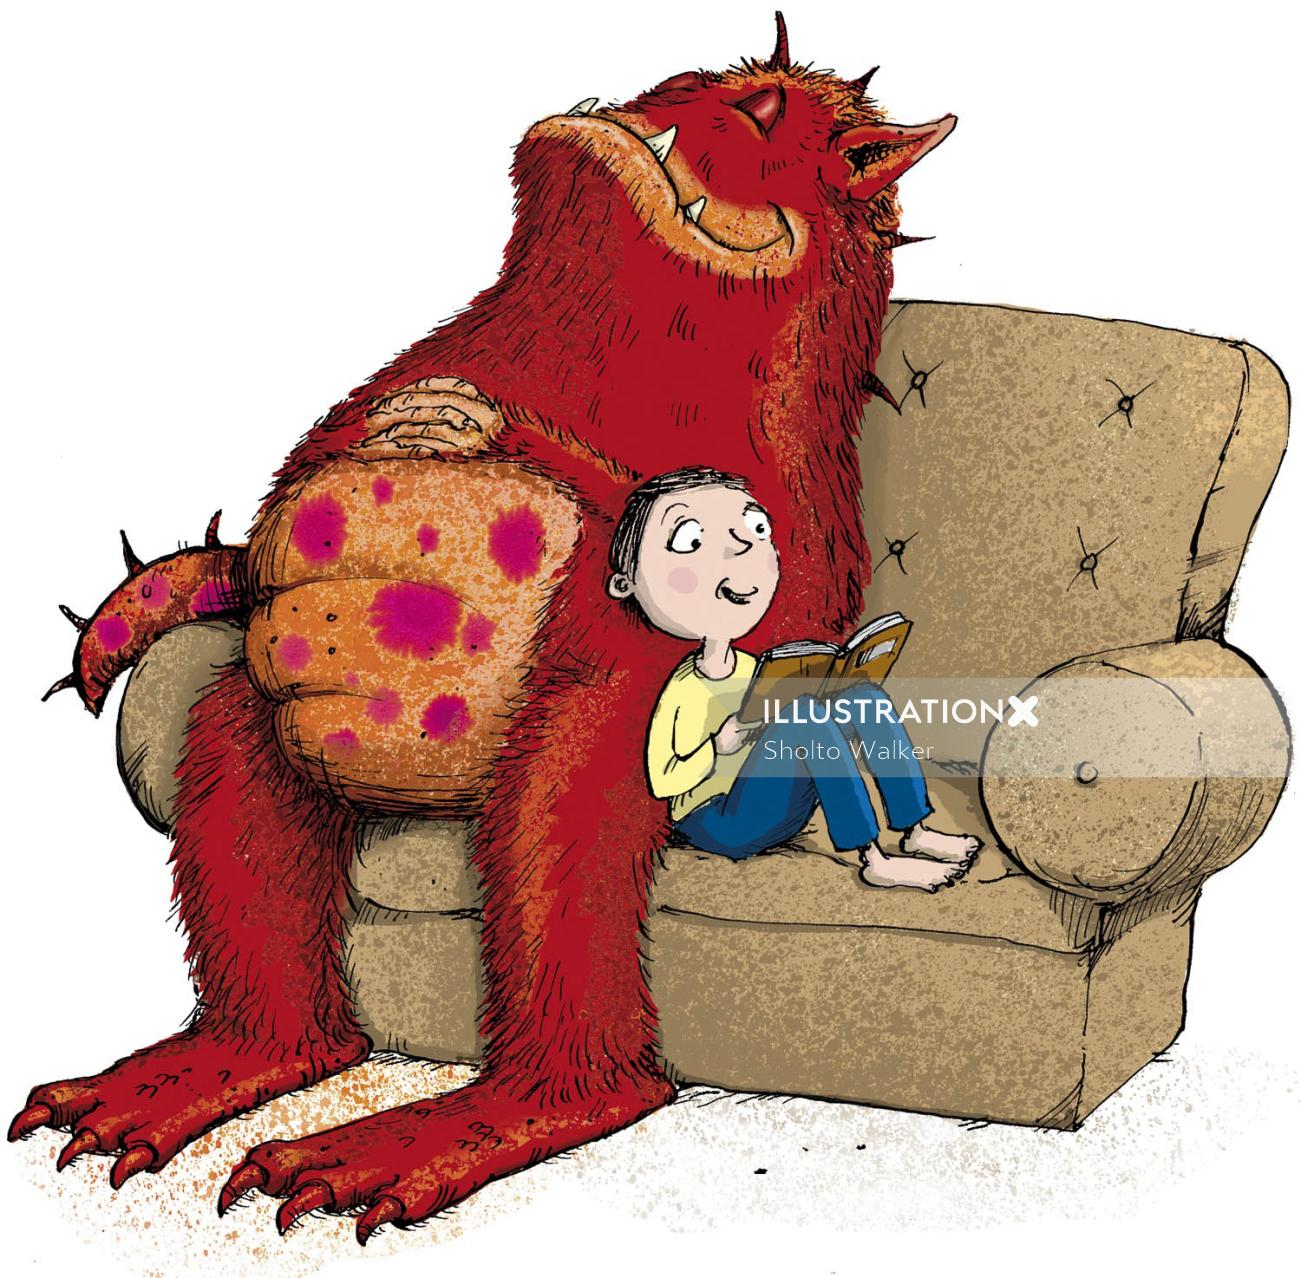 Boy and monster sitting in sofa - An illustration by Sholto Walker